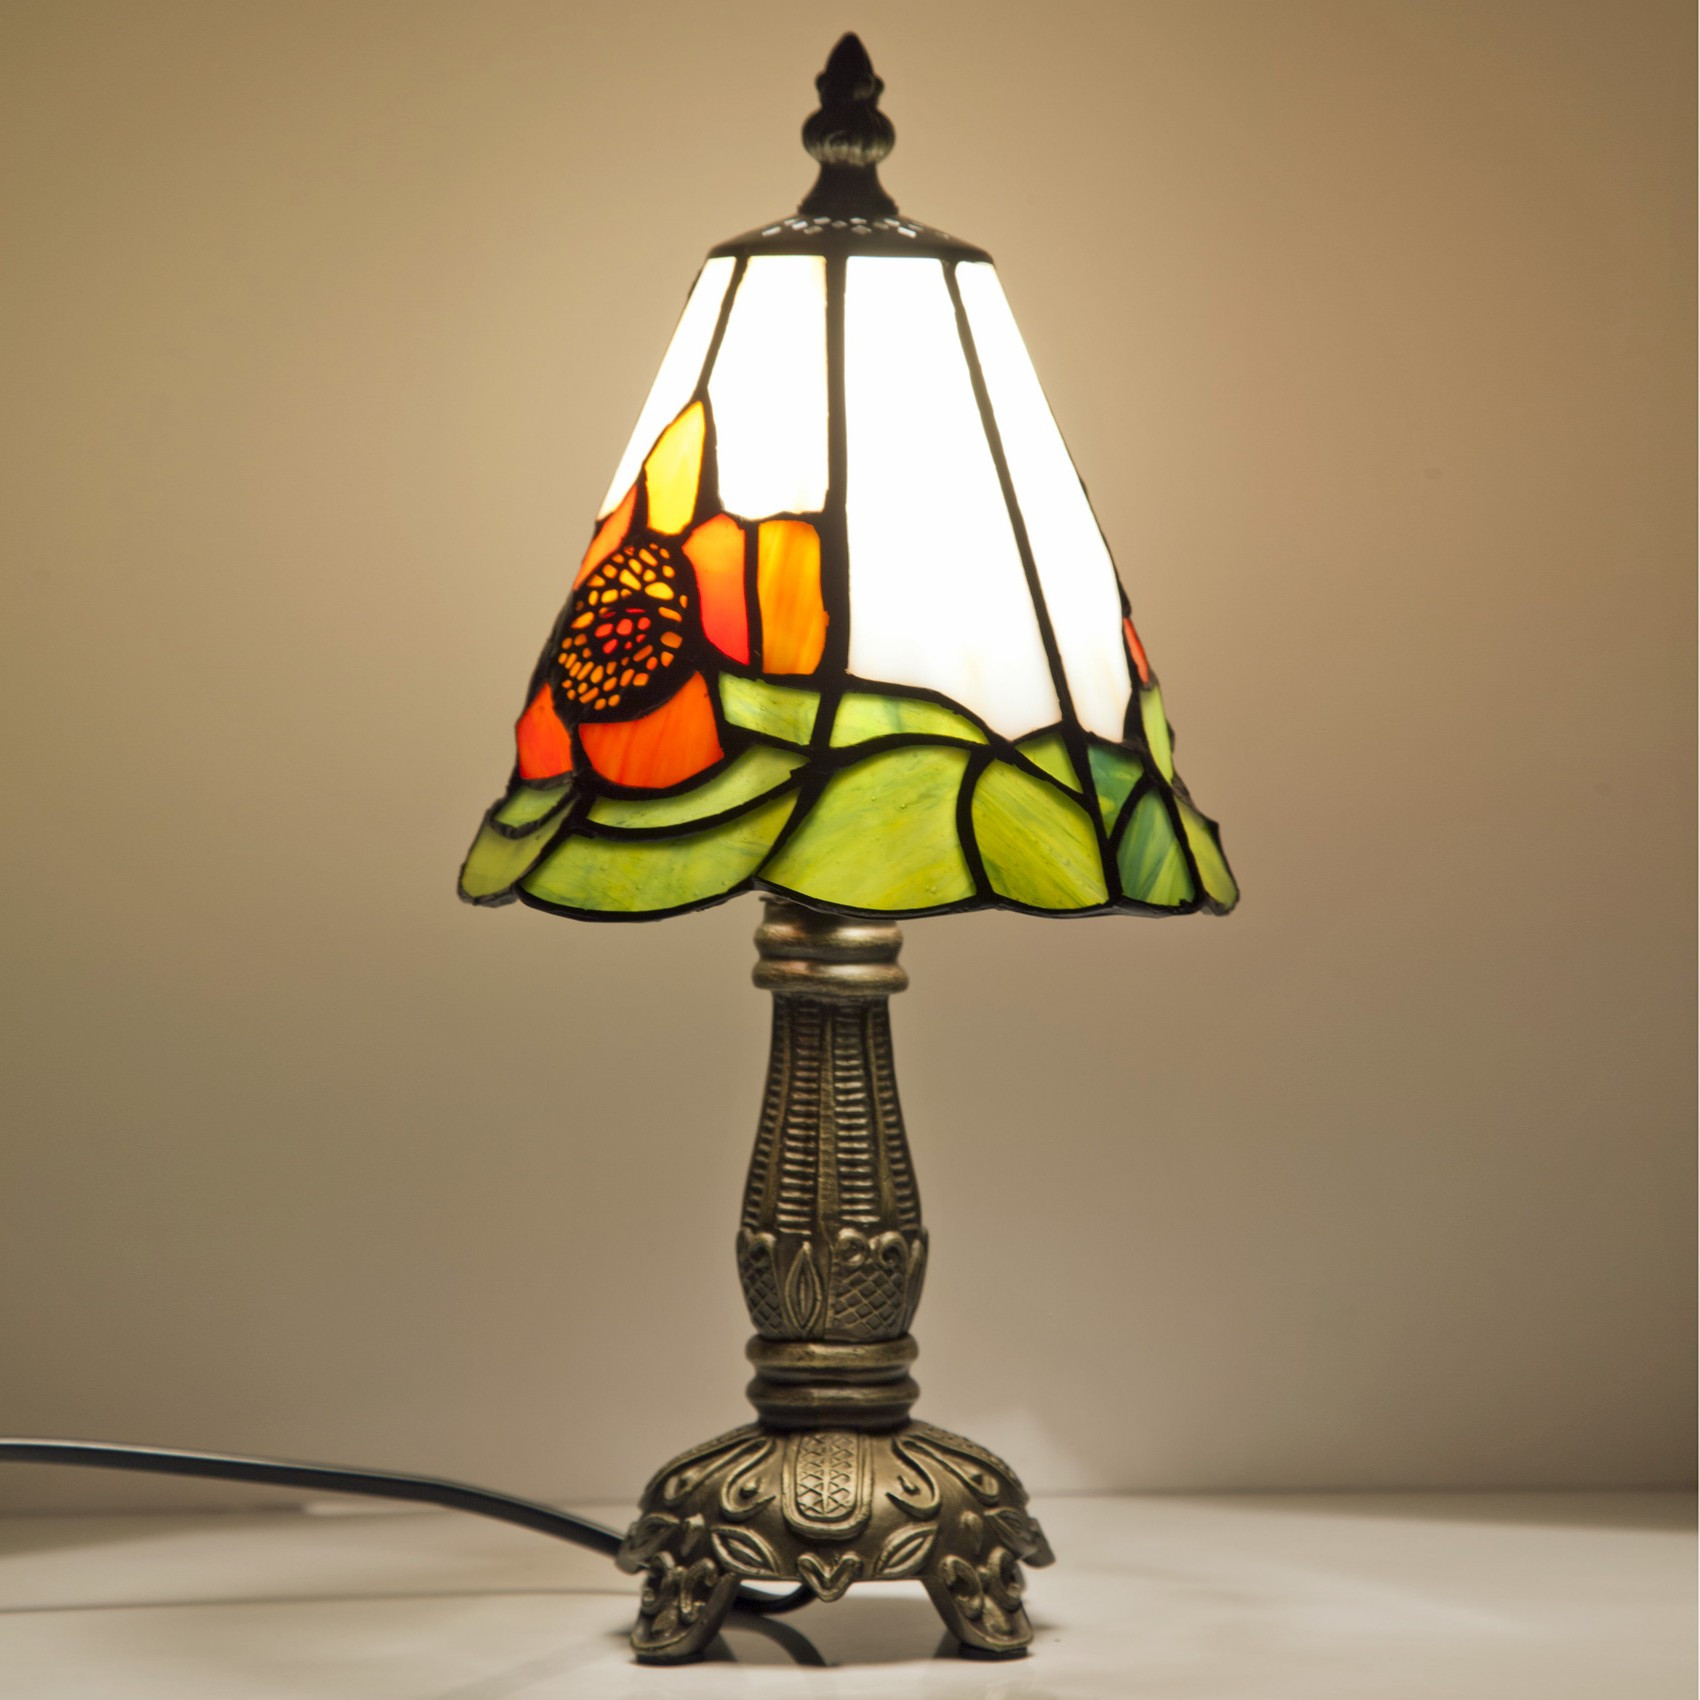 Best ideas about Small Desk Lamp . Save or Pin Make Romantic Atmosphere with Small Table Lamp Now.